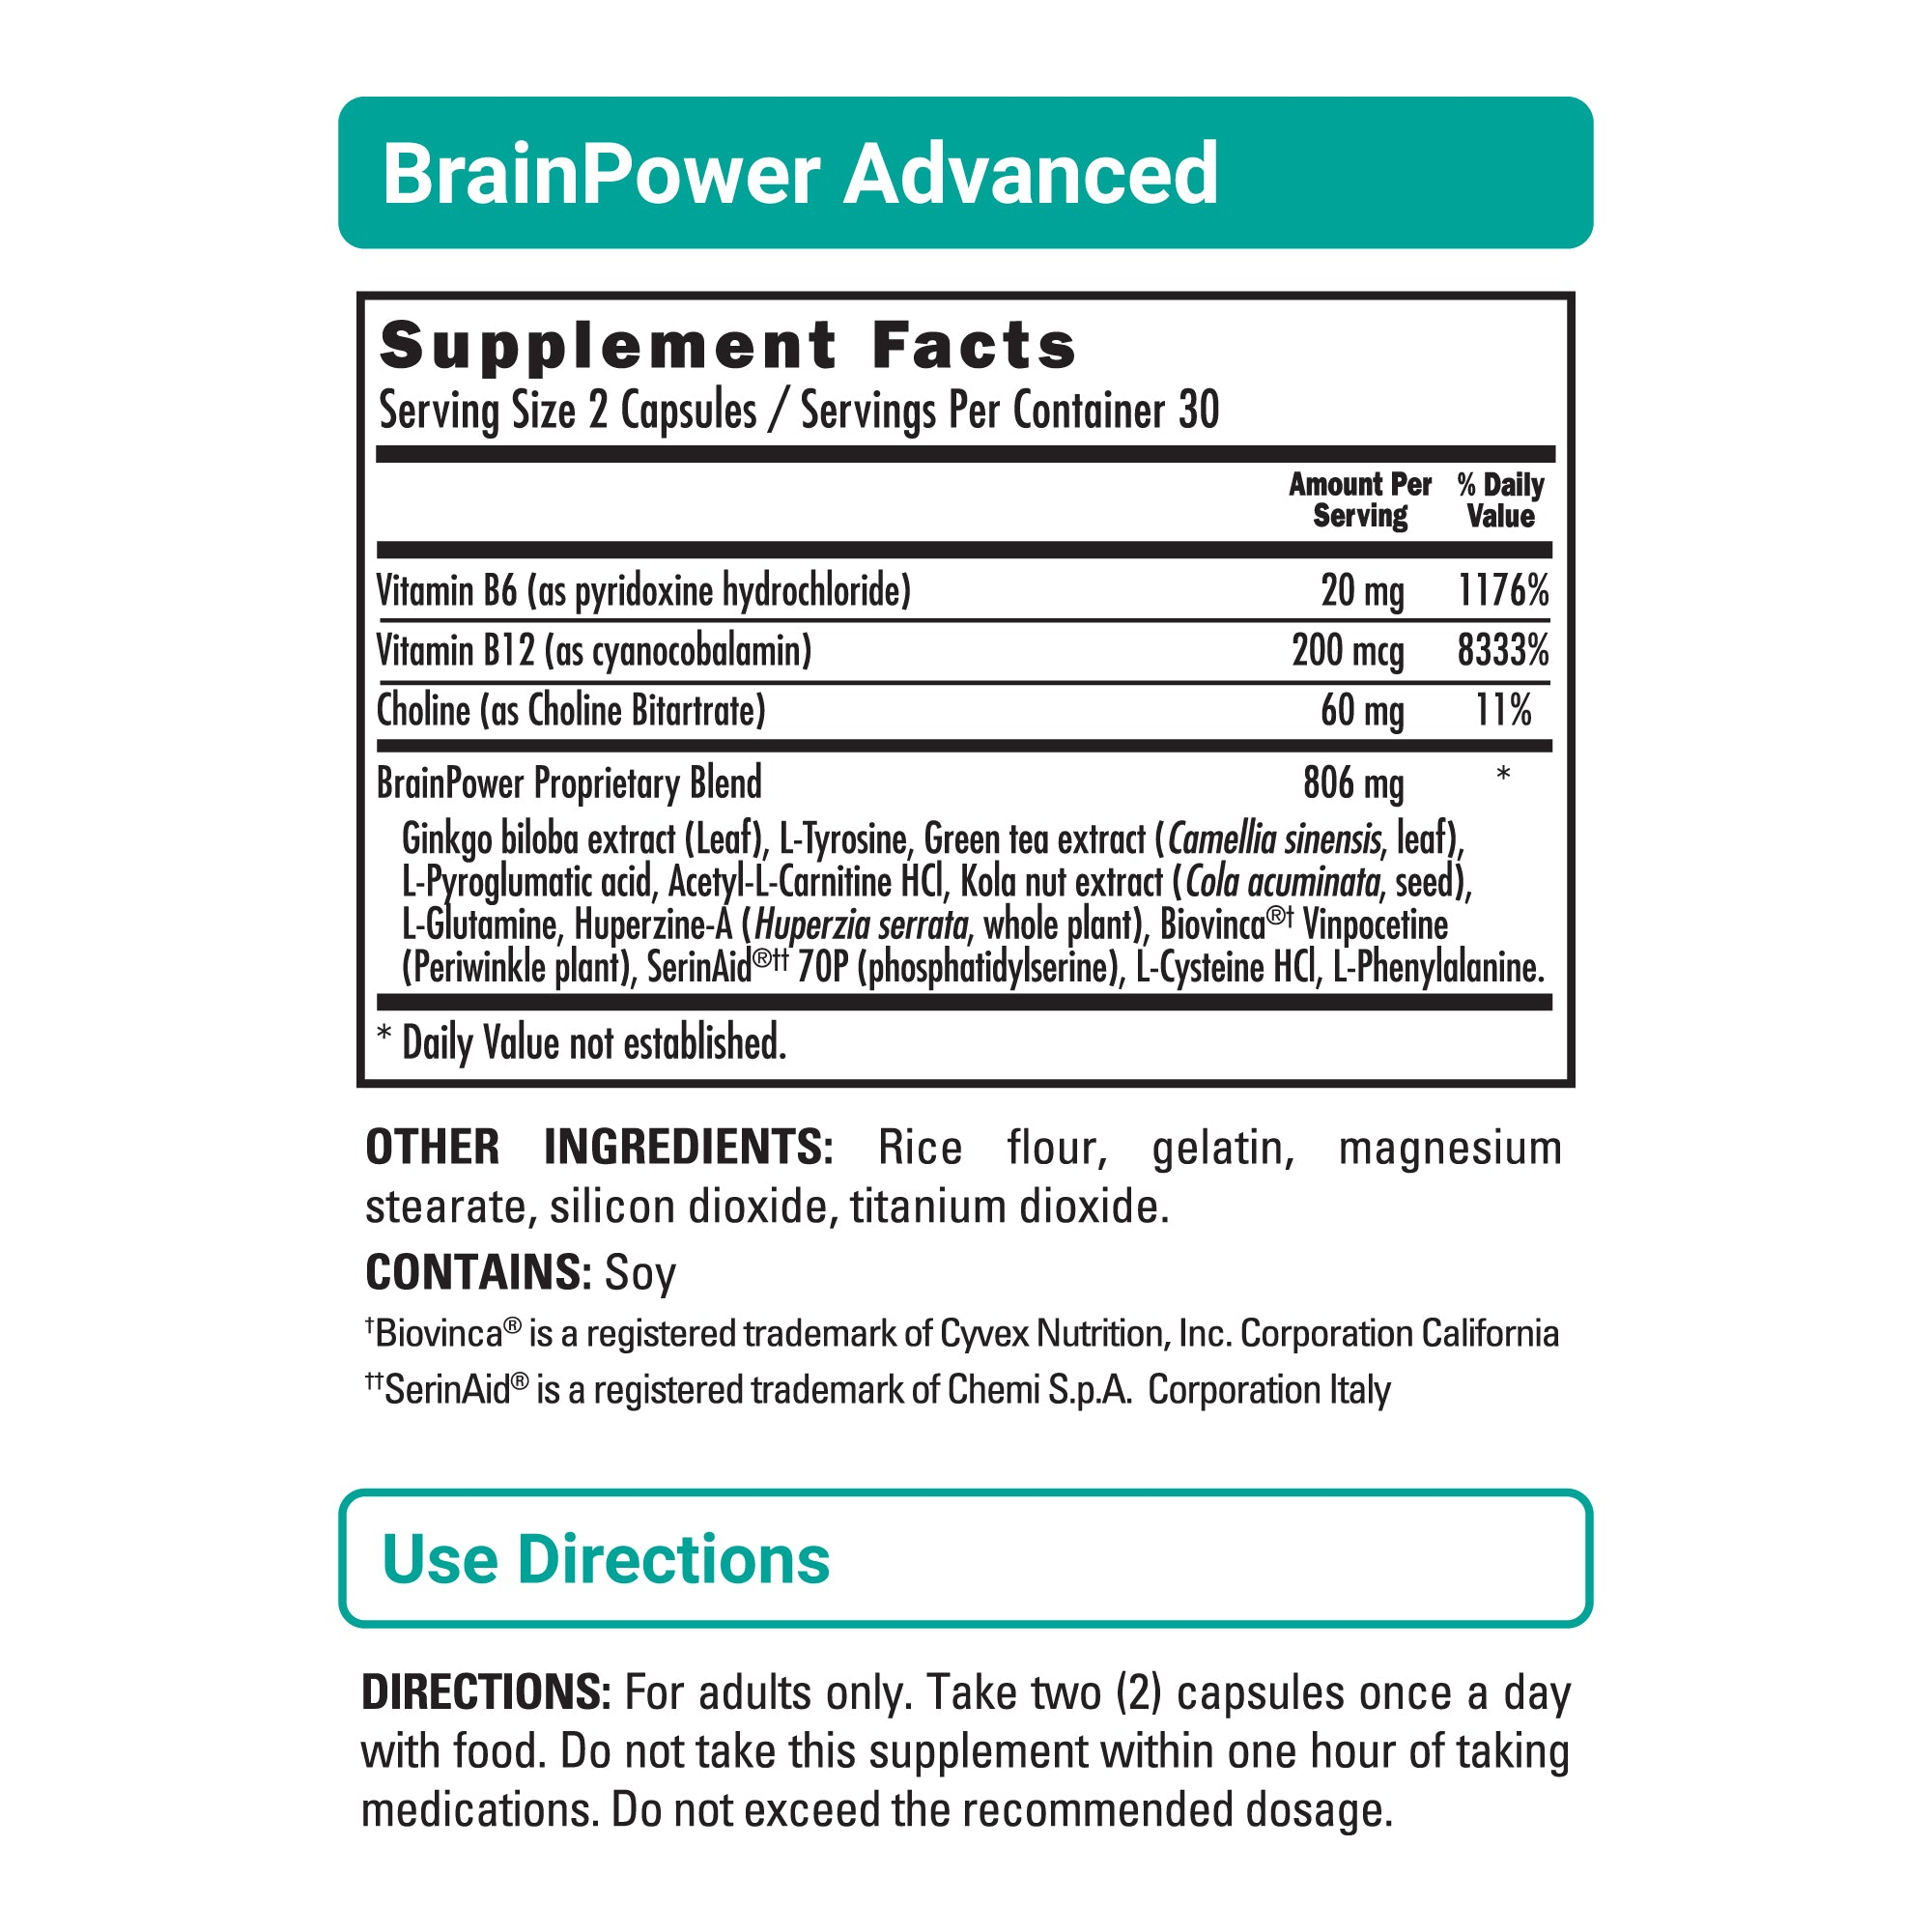 BrainPower Advanced sup facts